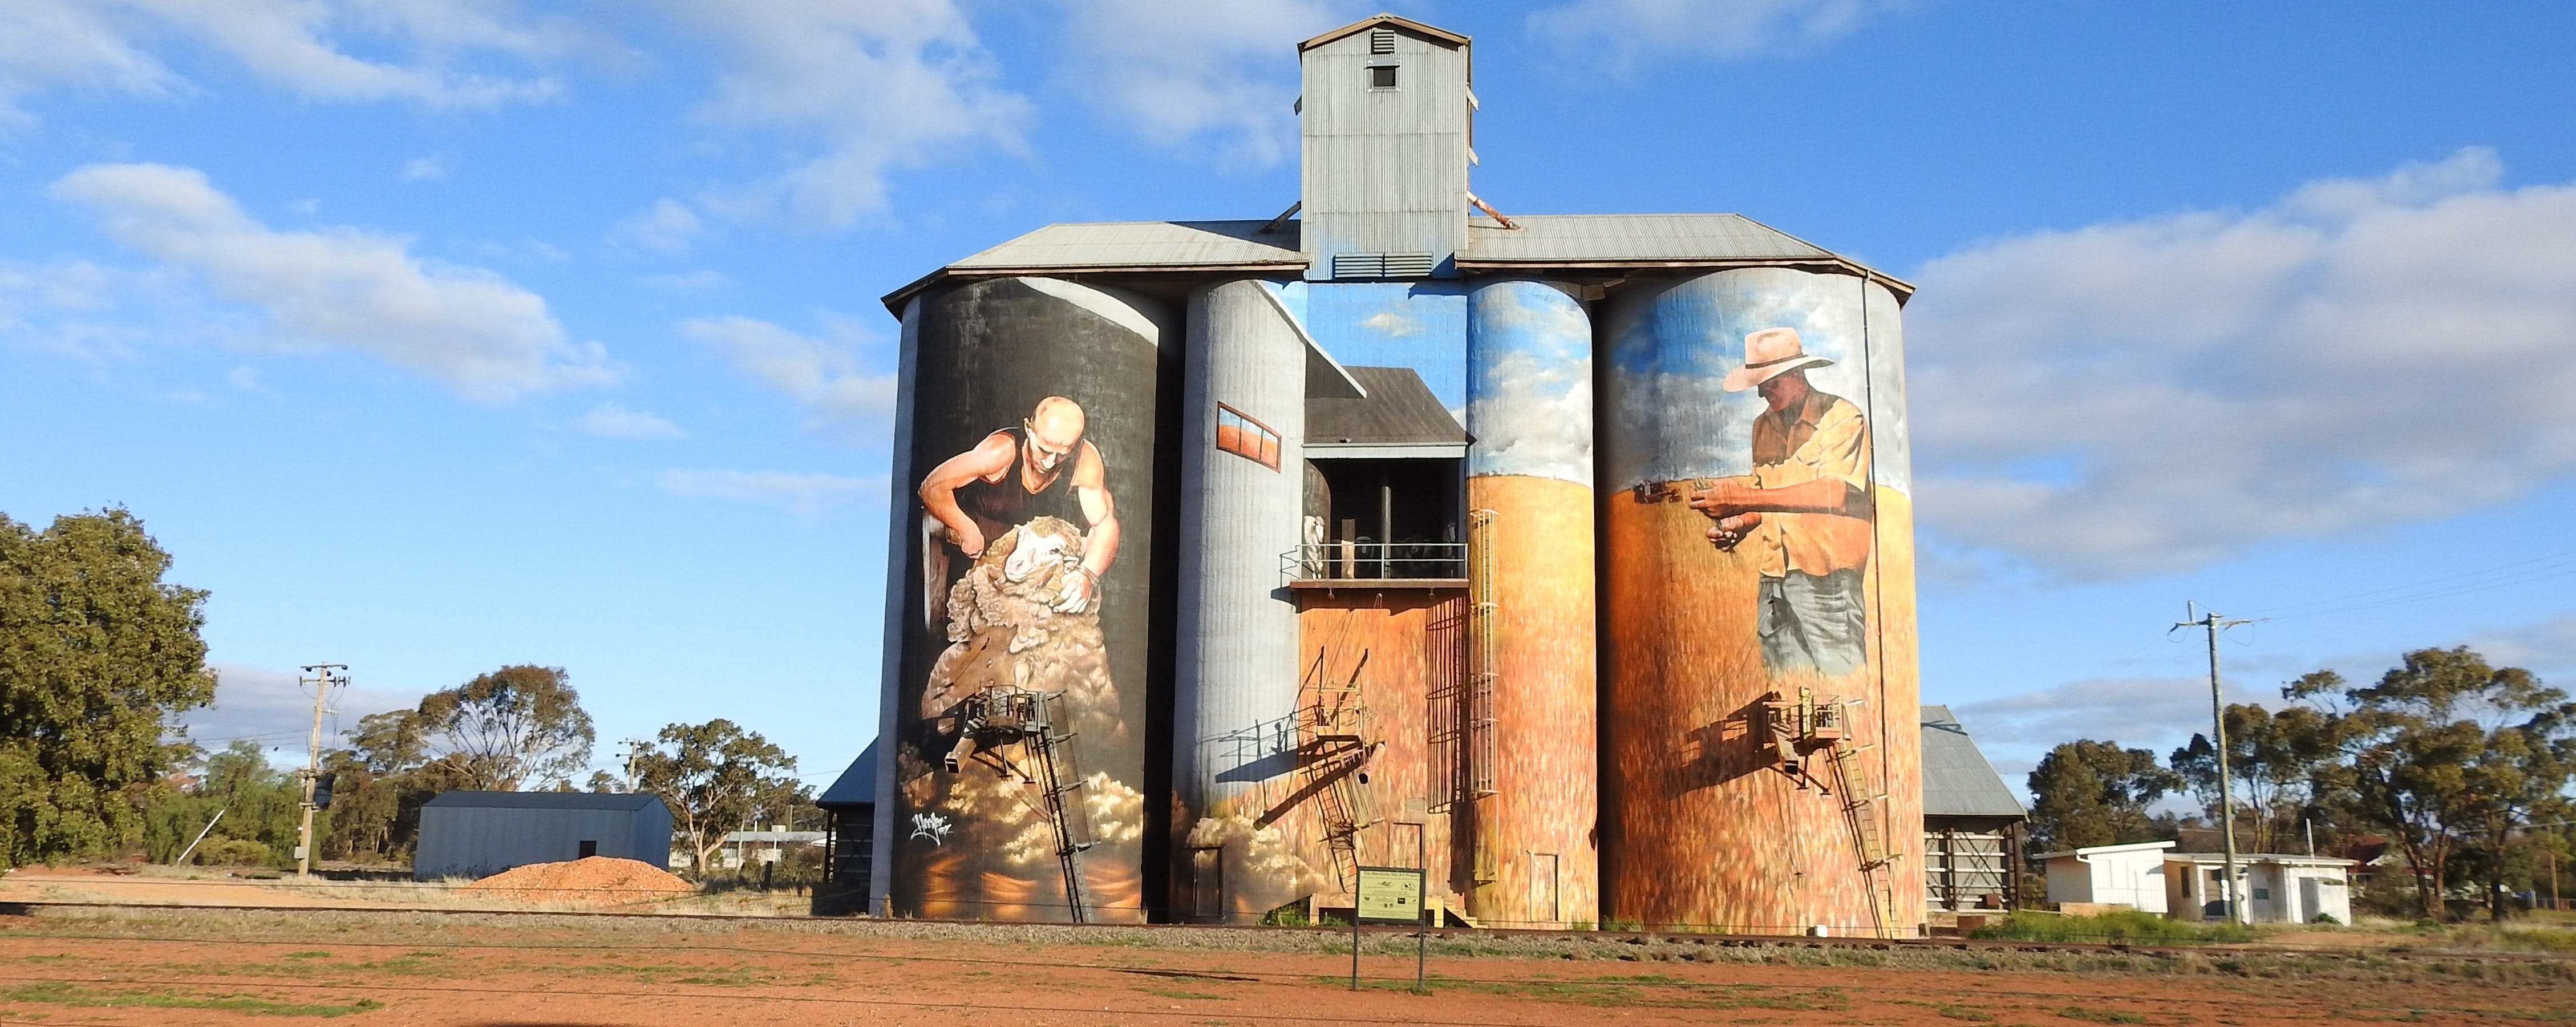 Riverina Outdoor Art Trail - Accommodation Perth